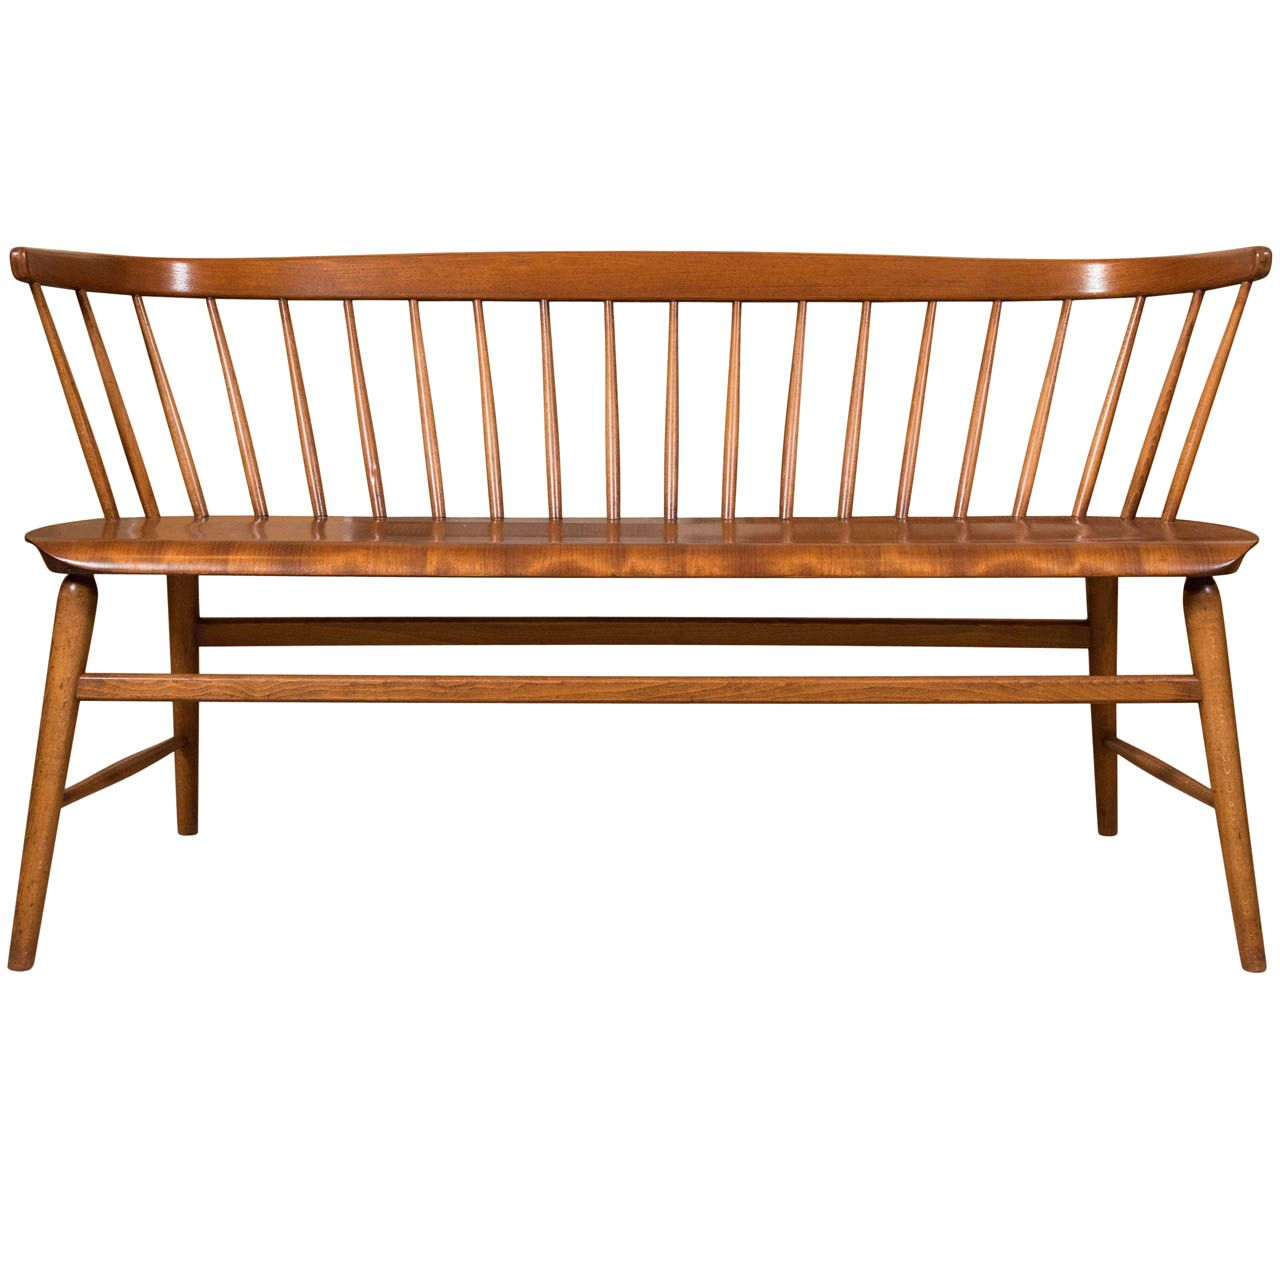 1960s-1970s Scandinavian Deacon Bench Teak & Walnut ***Saturday